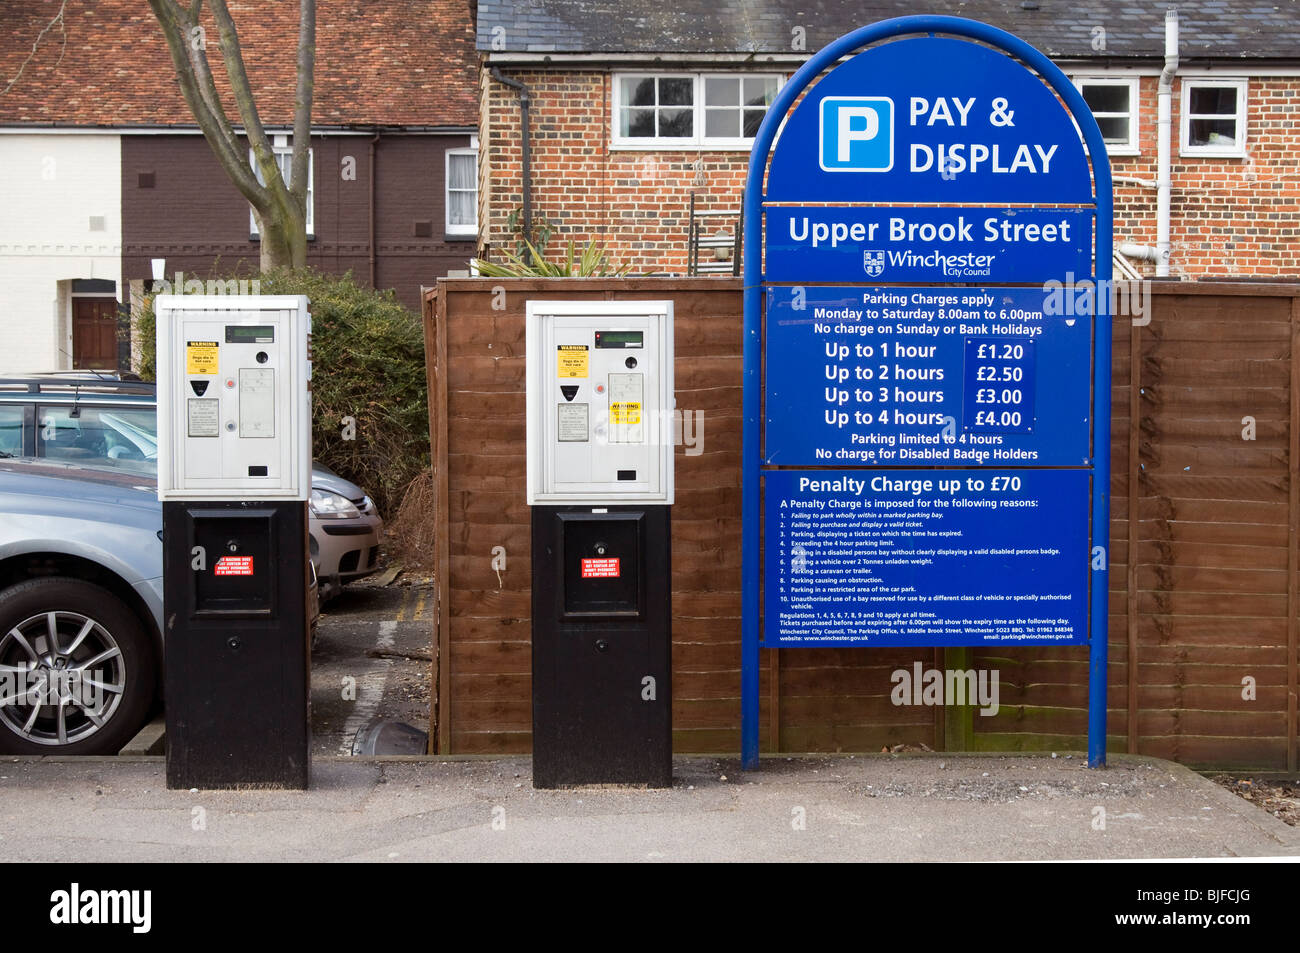 Pay and Display car park sign and ticket machines, Upper Brook Street car park, Winchester, Hampshire - Stock Image